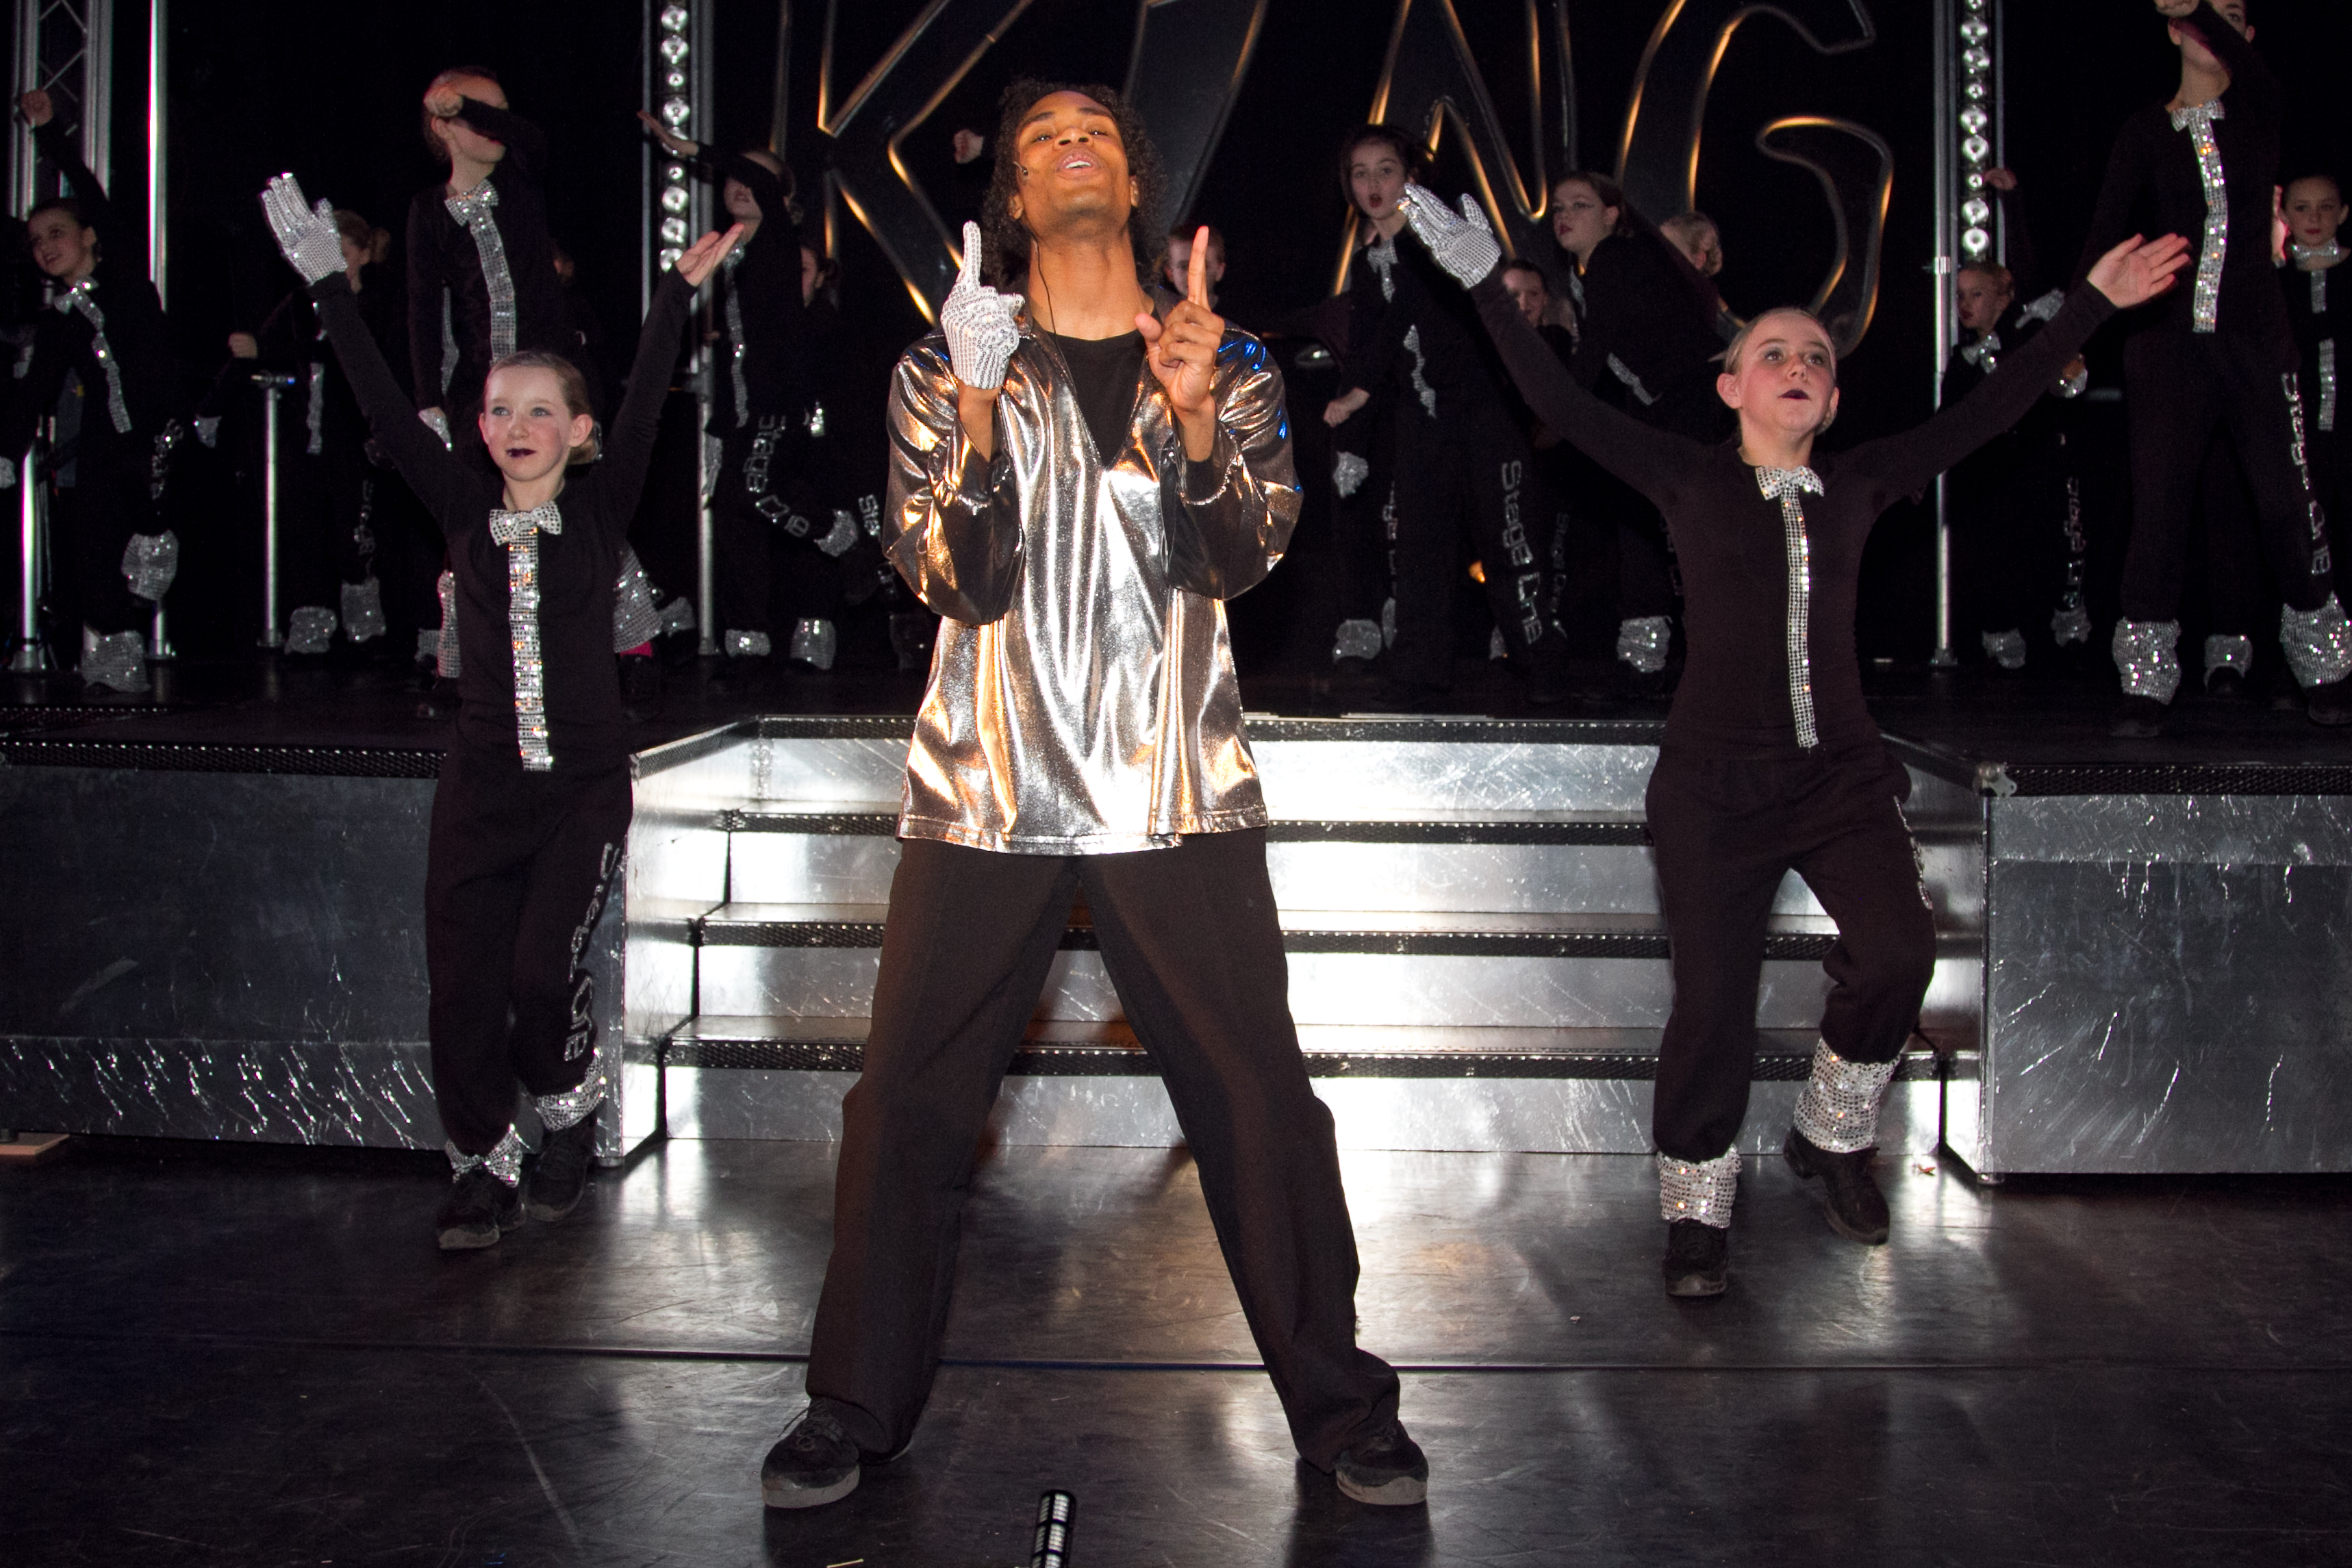 Jackson 5 - King Of Pop 2011